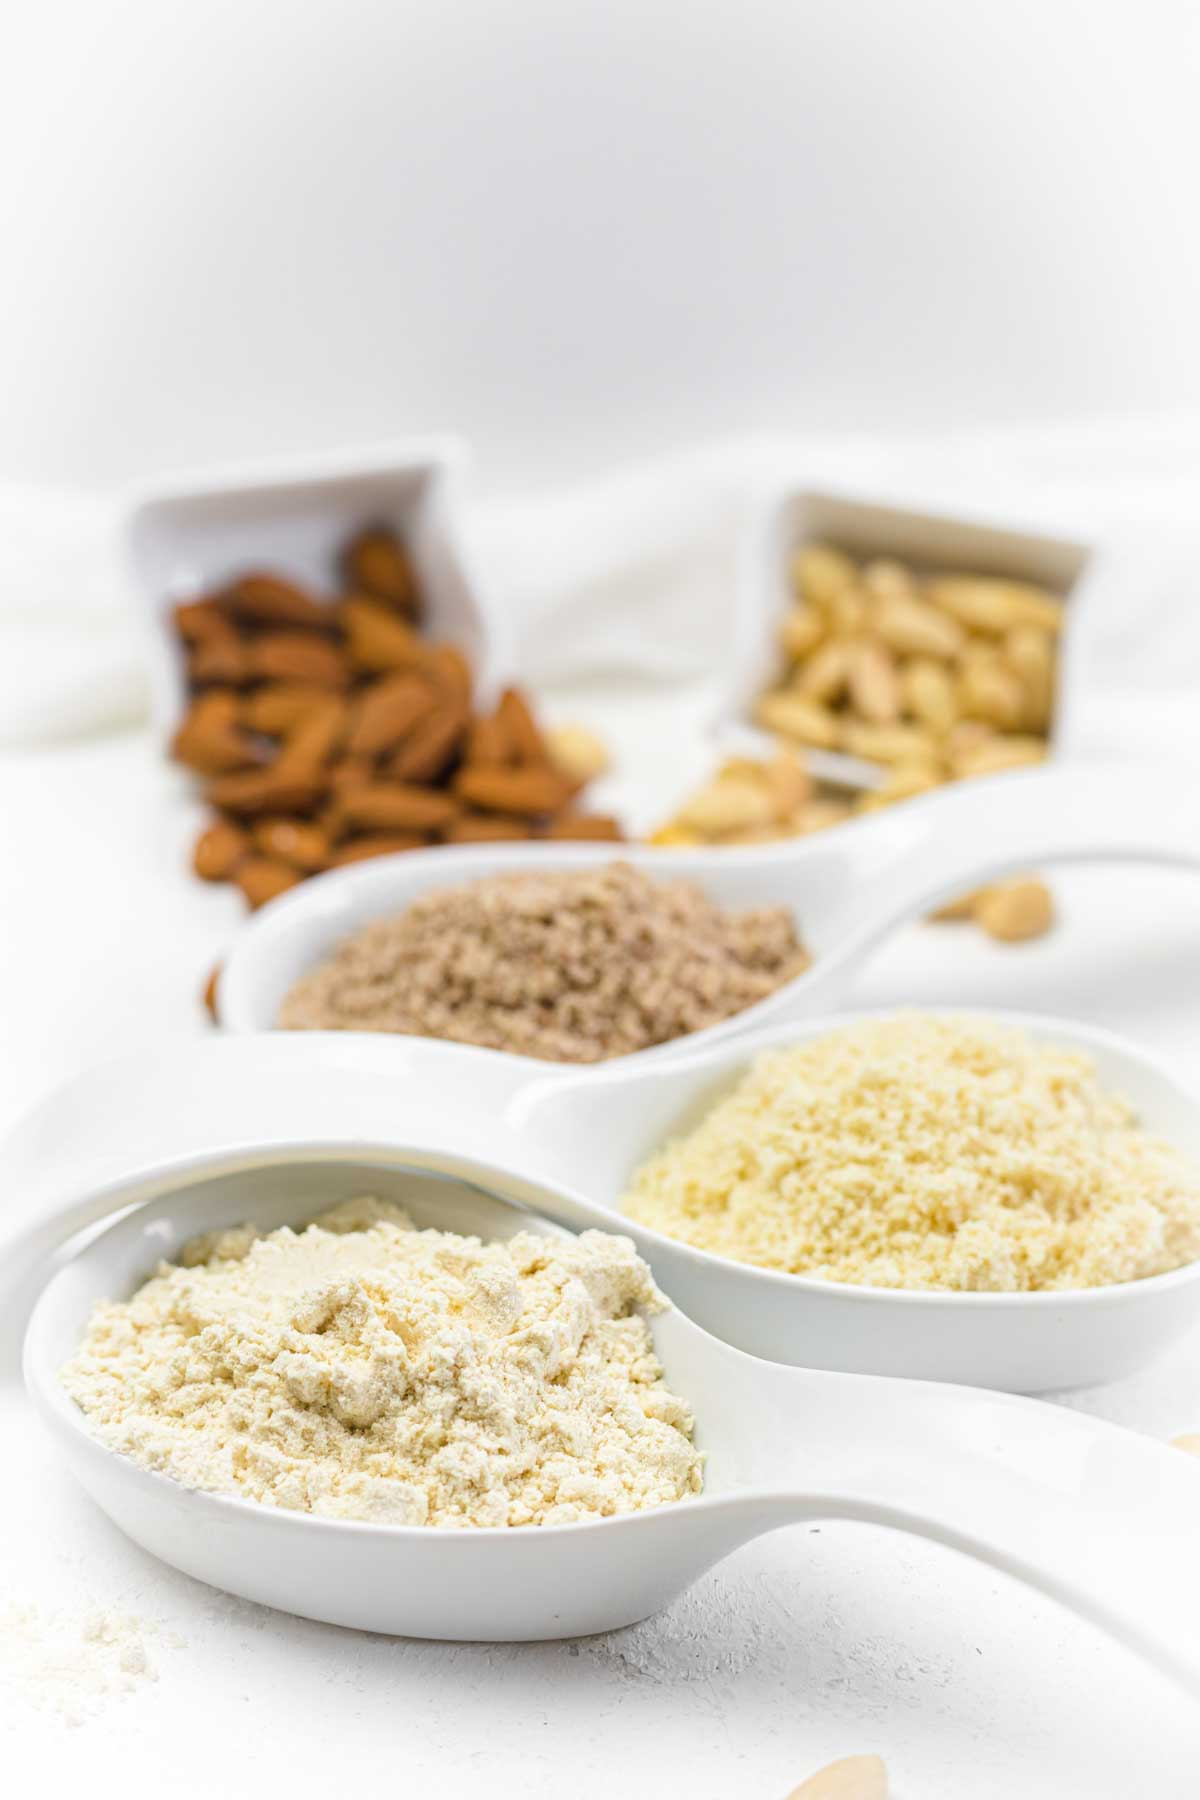 Almond Flour Unfatenned, regular and with skin grounded for Keto baking